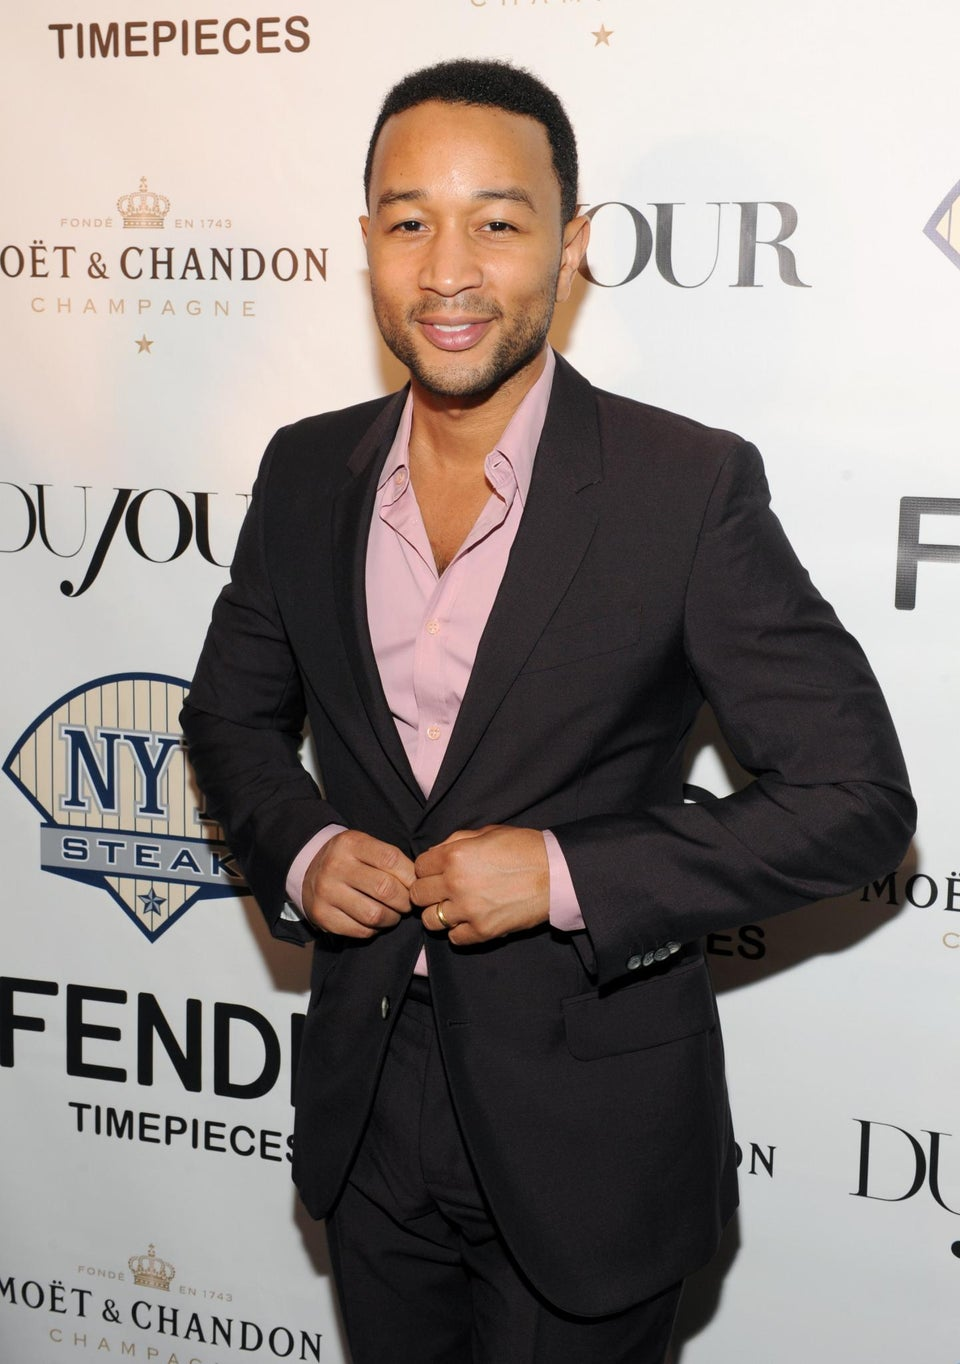 """John Legend Thinks 'Blurred Lines' Verdict May Be A """"Slippery Slope"""""""